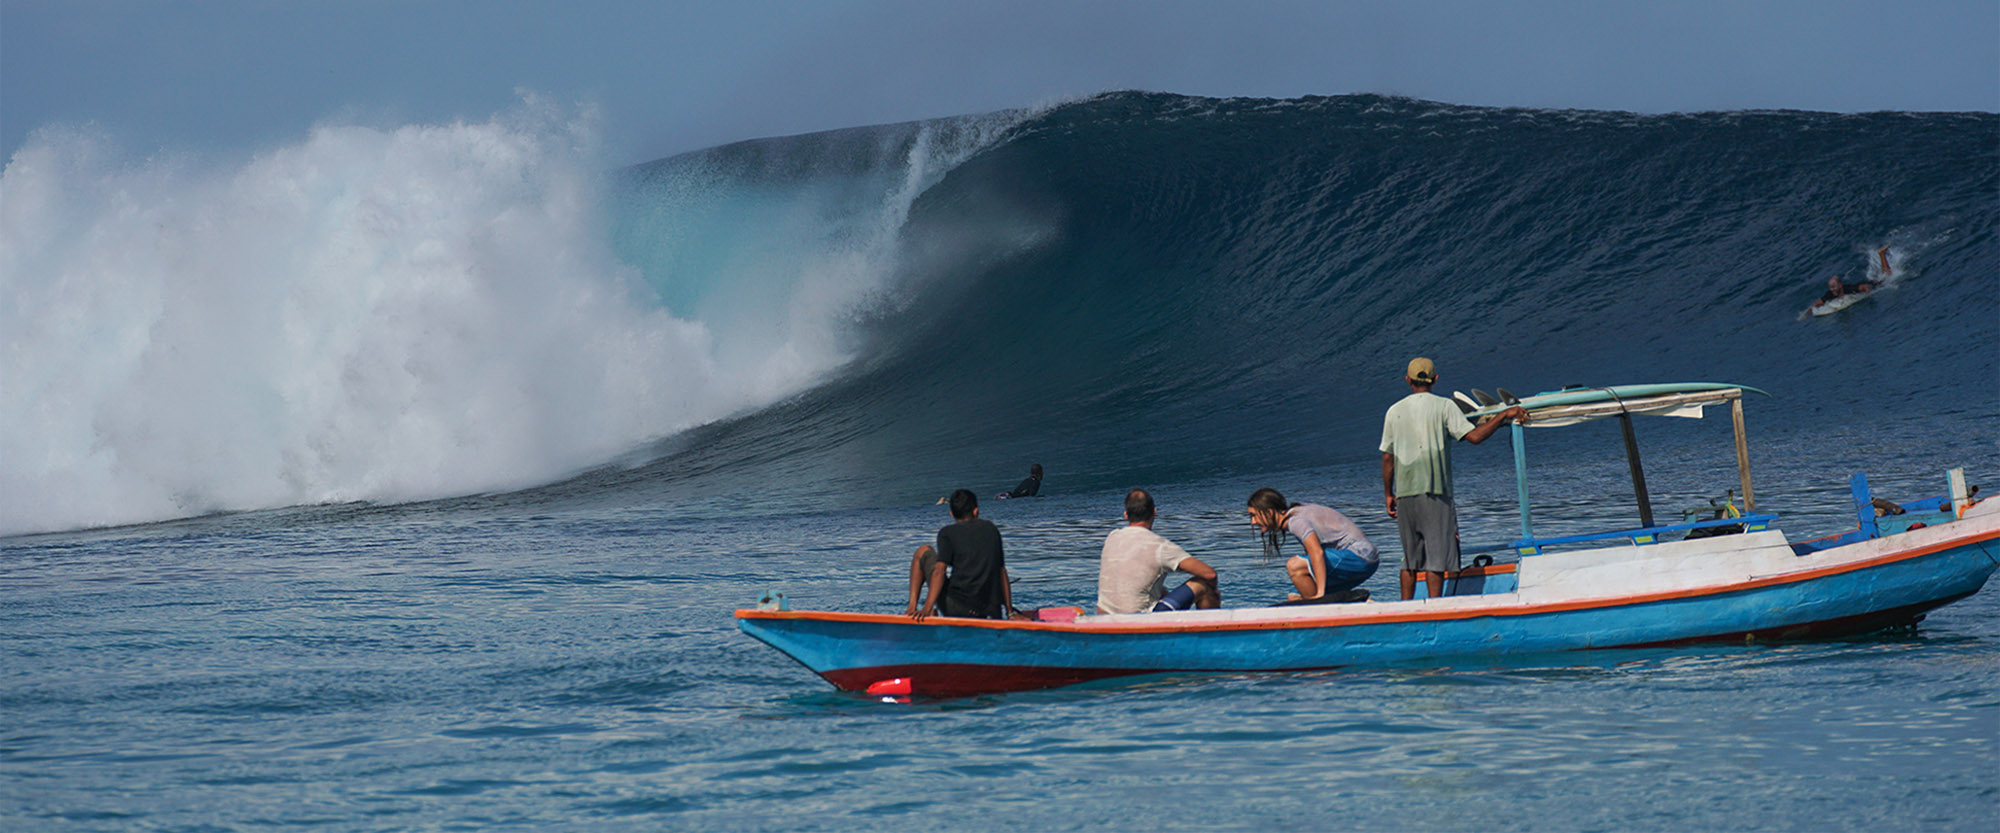 surfing big waves locals indonesia rote island nemberala t land